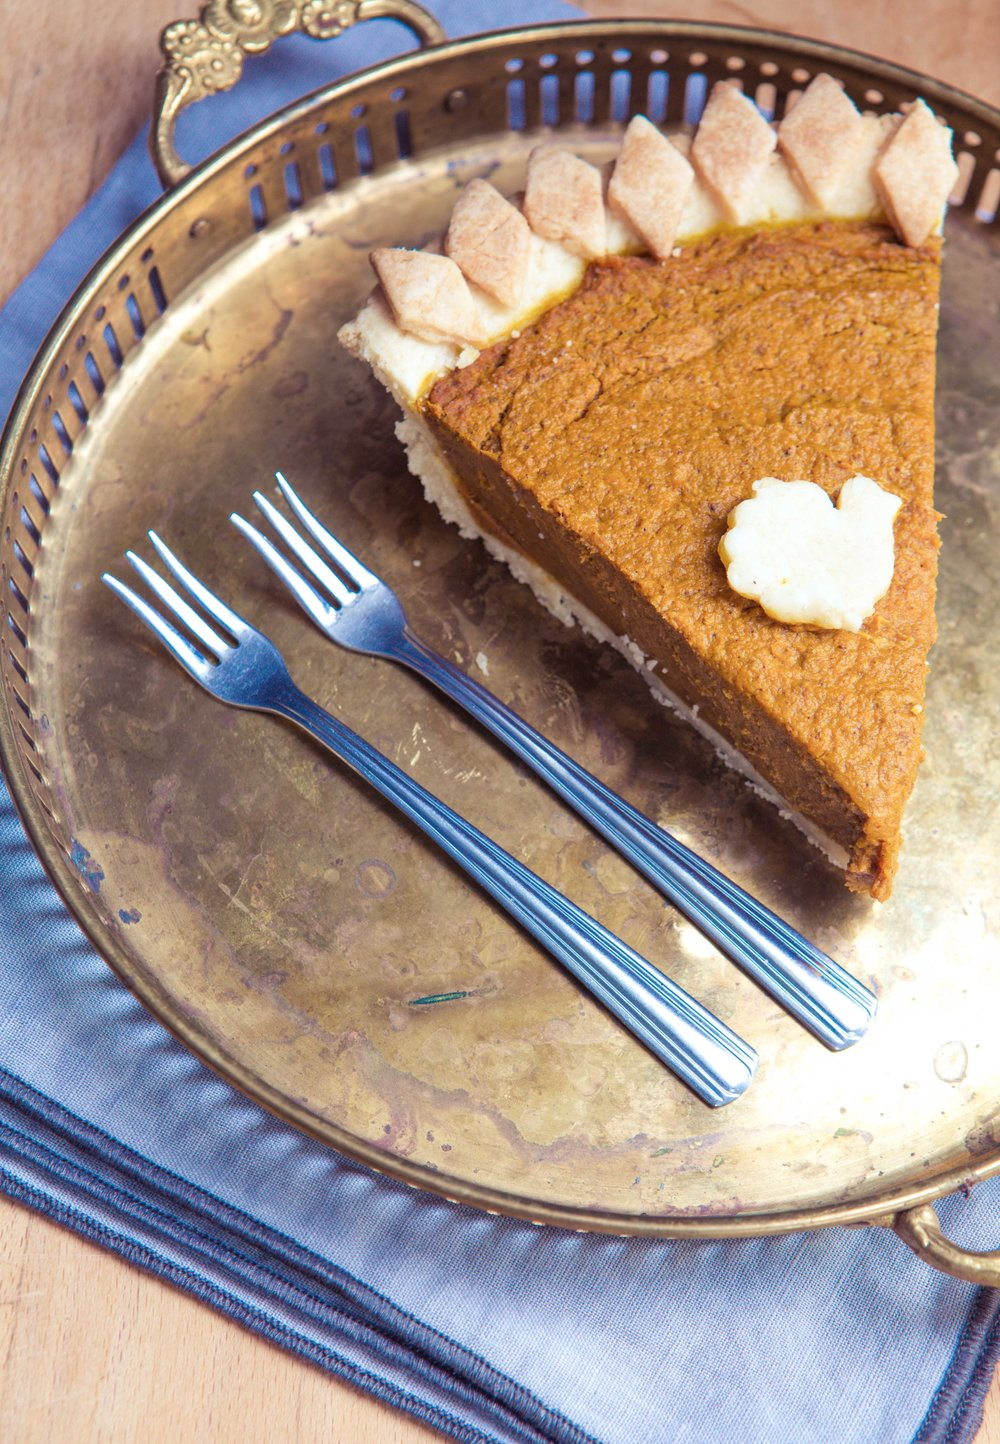 slice of pumpkin pie.jpg